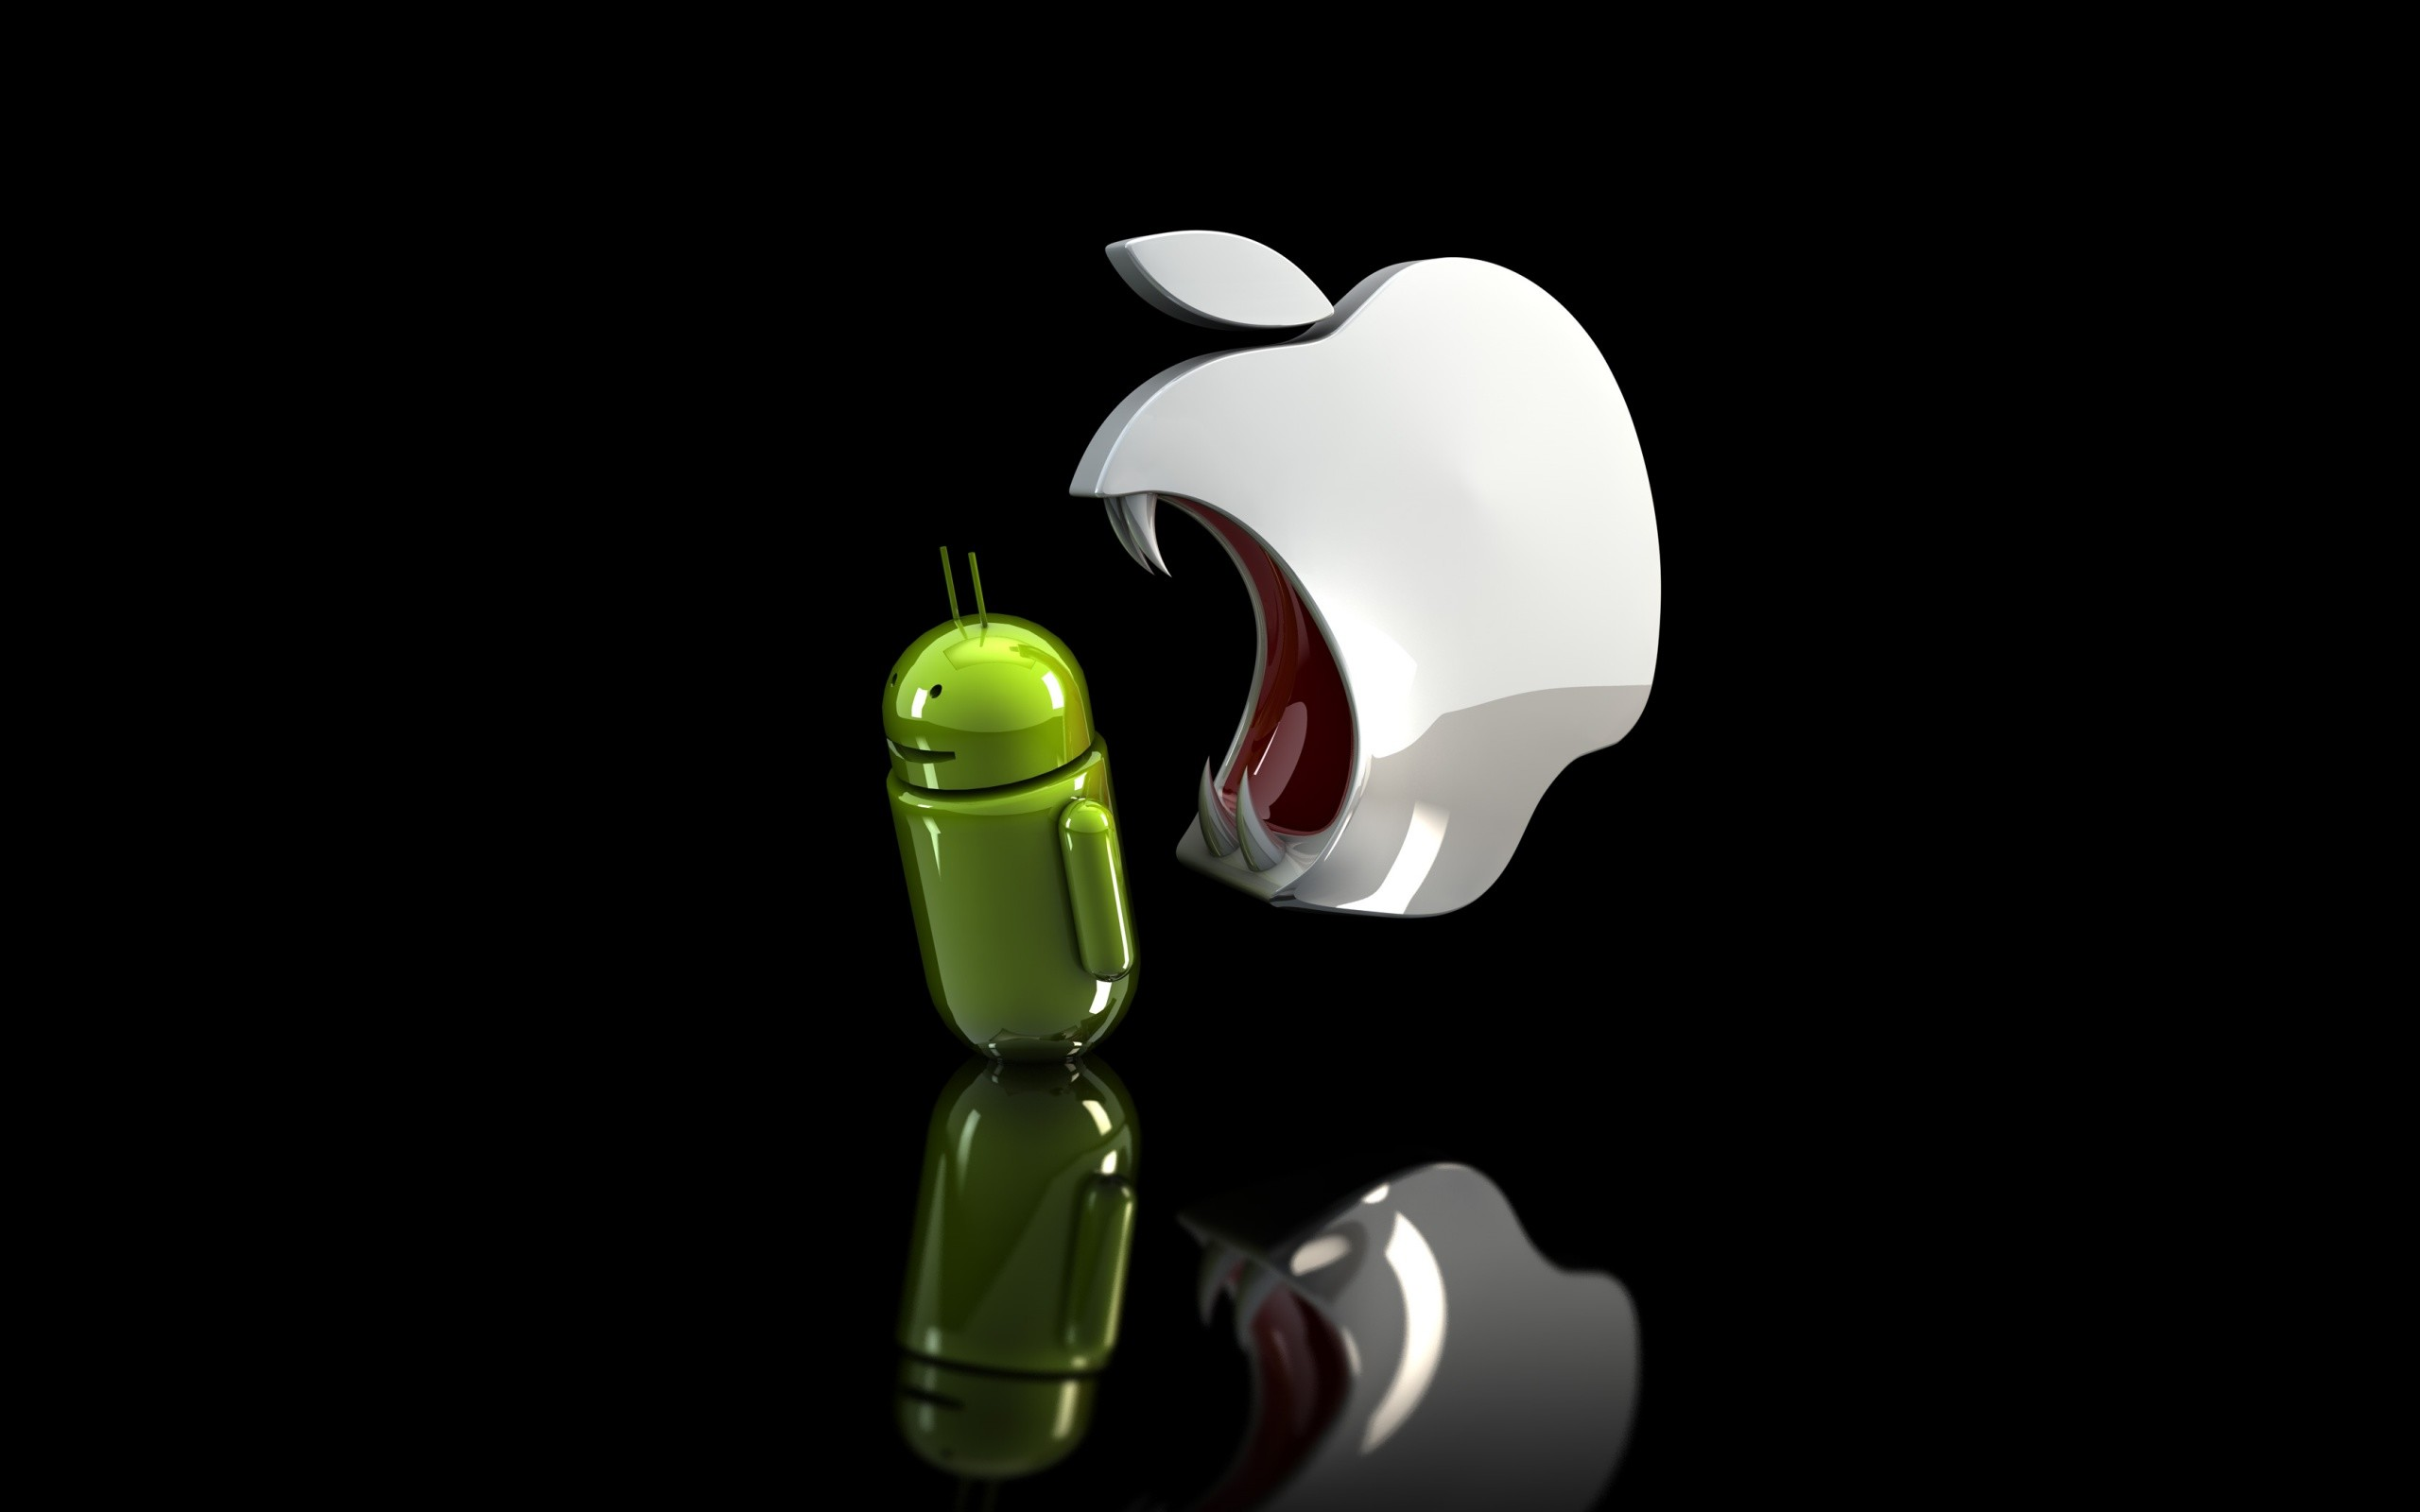 wallpapers 4k-hd Apple-alegorias.es (7)